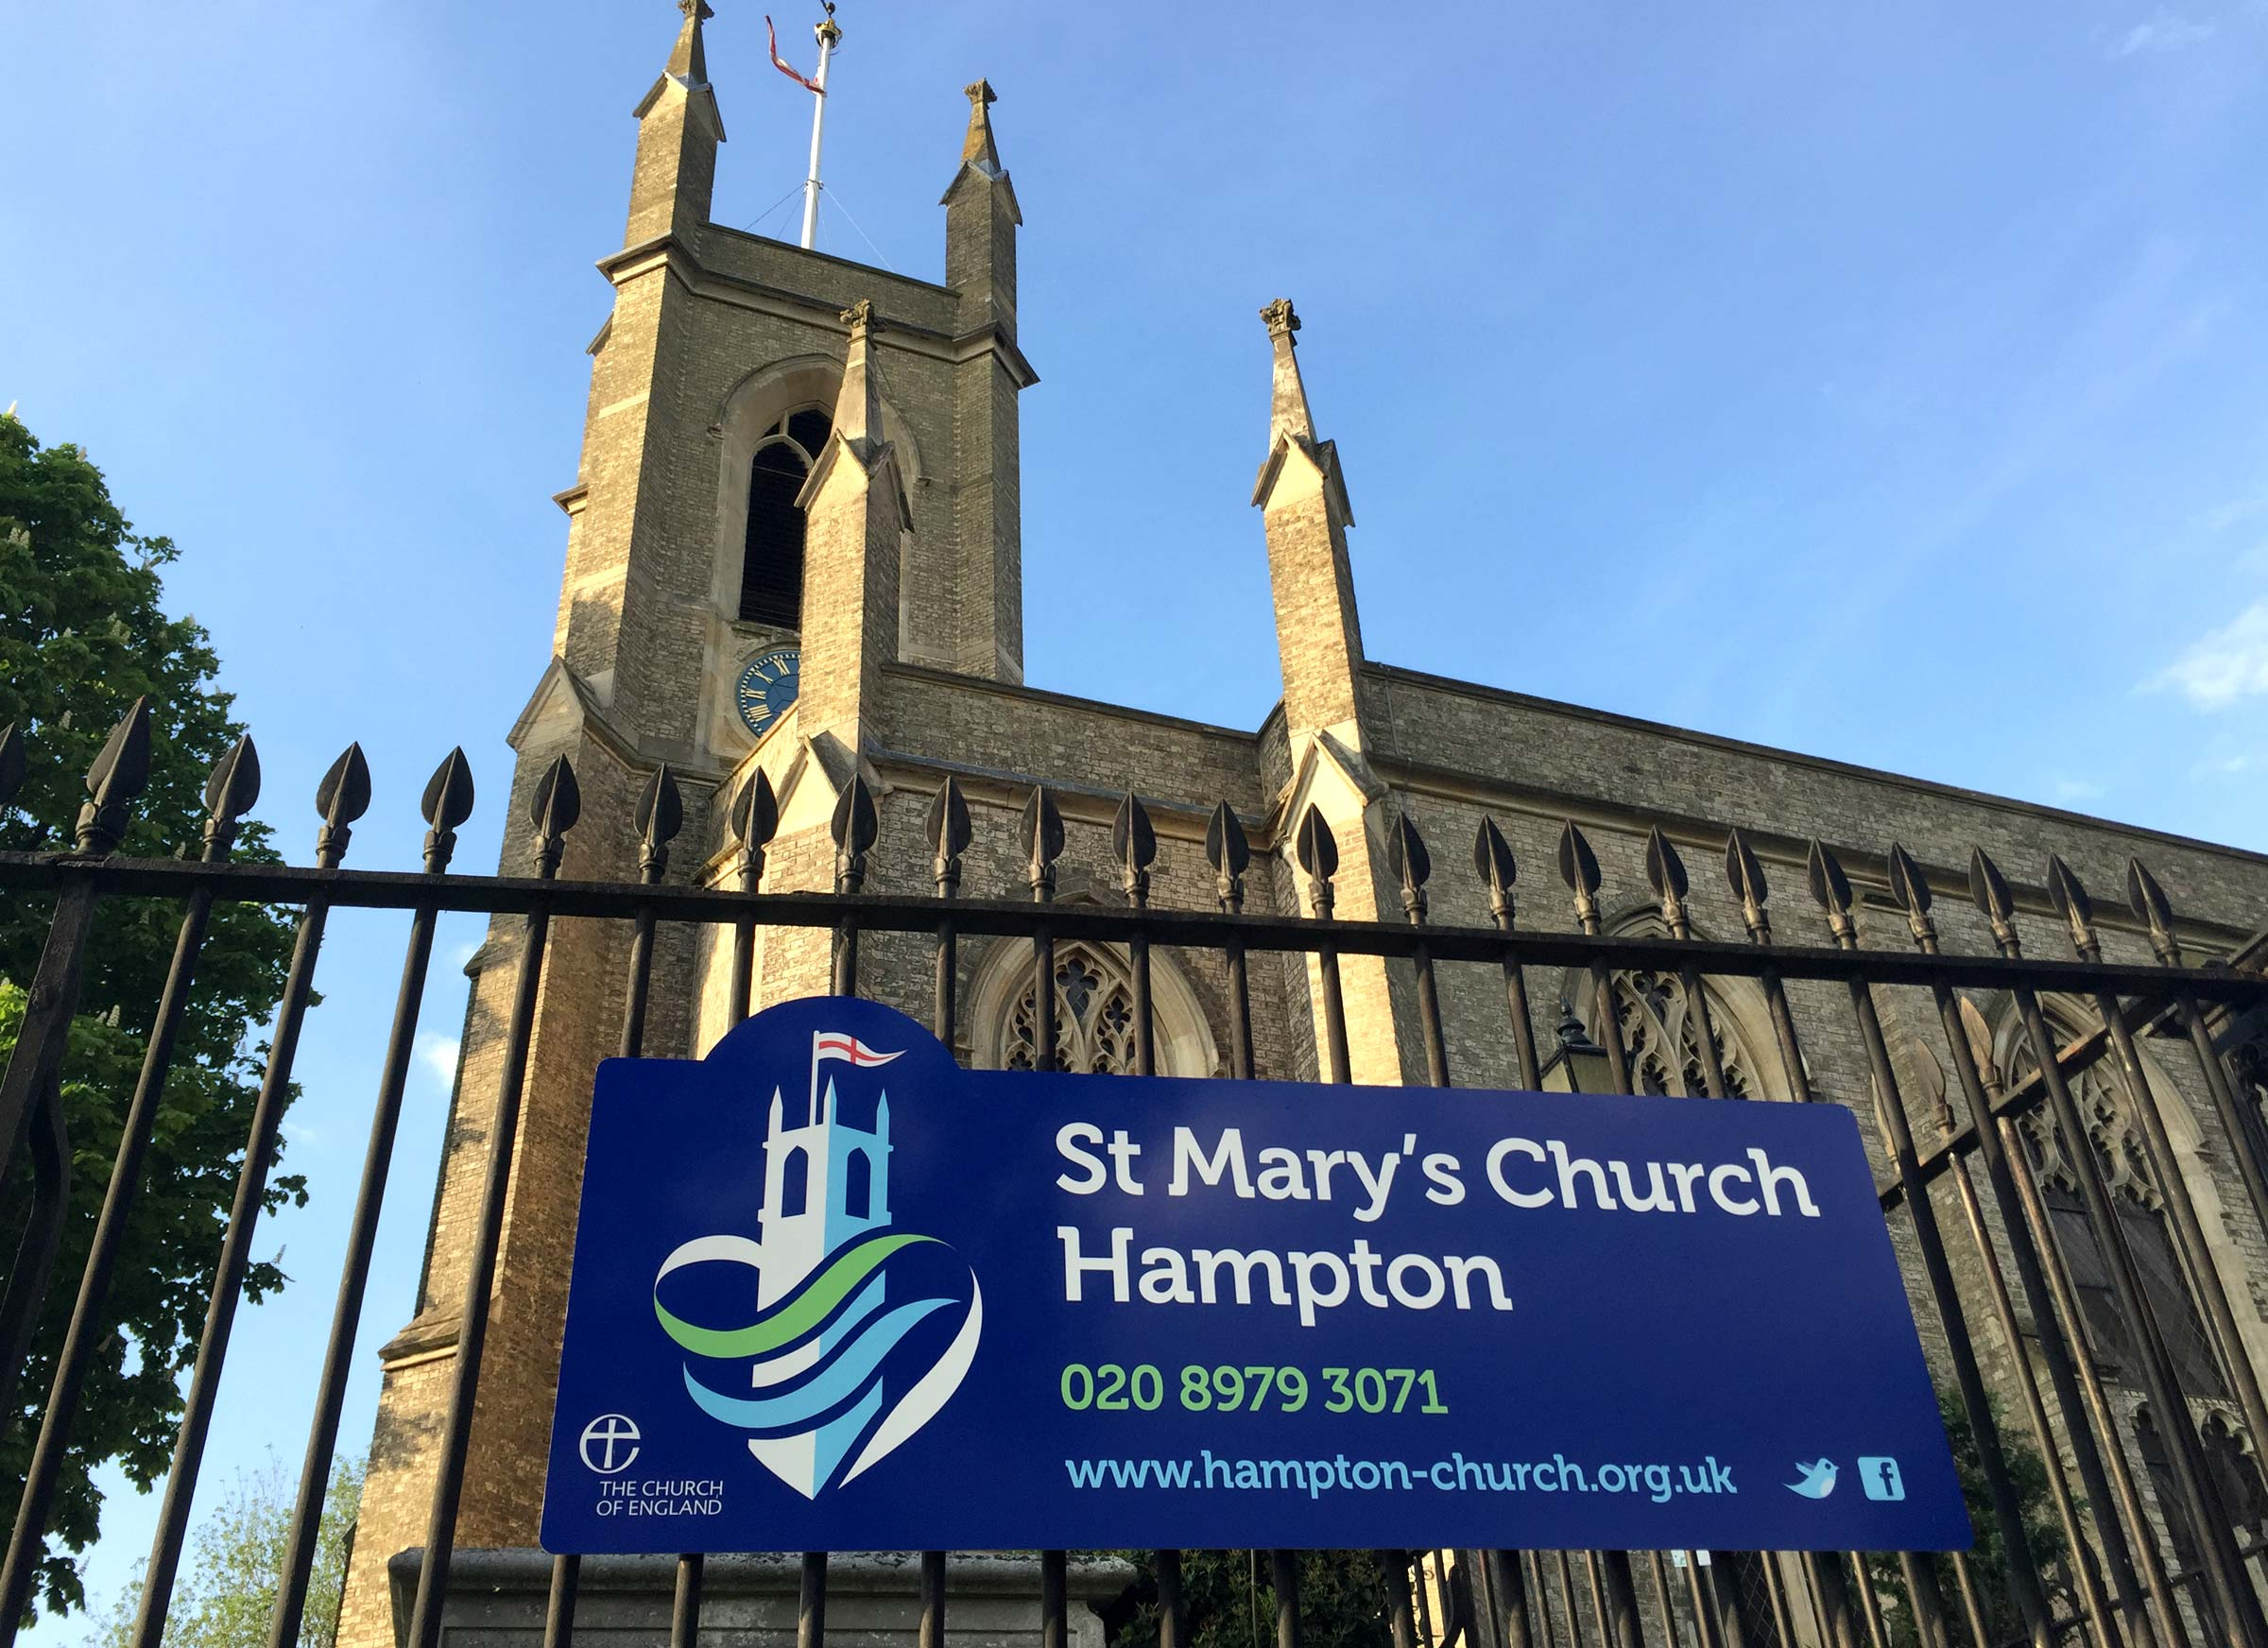 St Mary's church signage